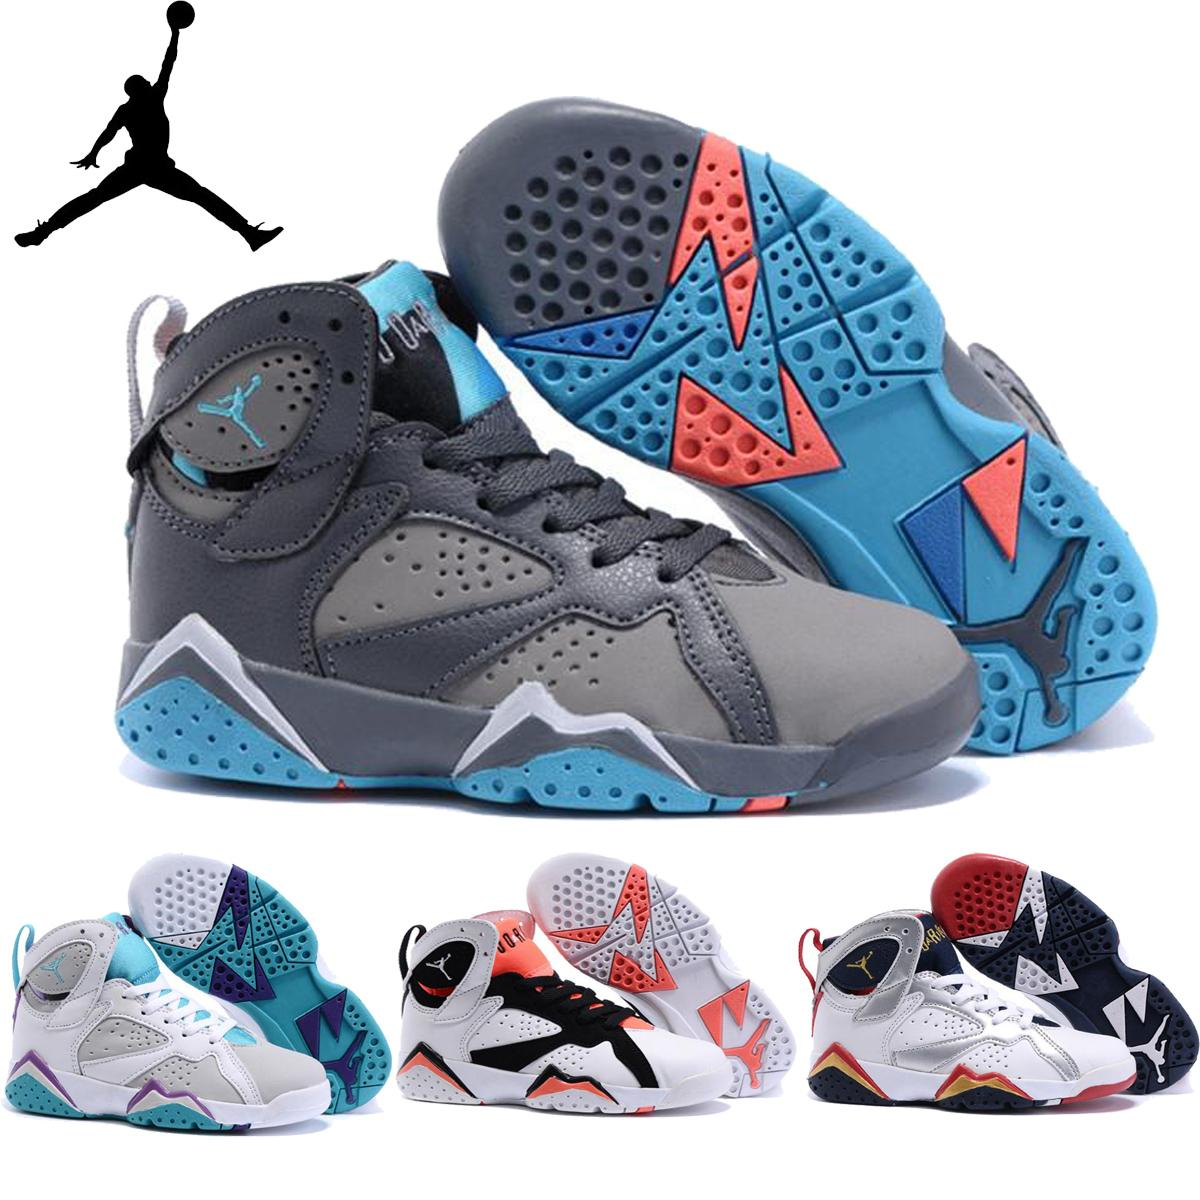 Air Jordan Childrens Shoes